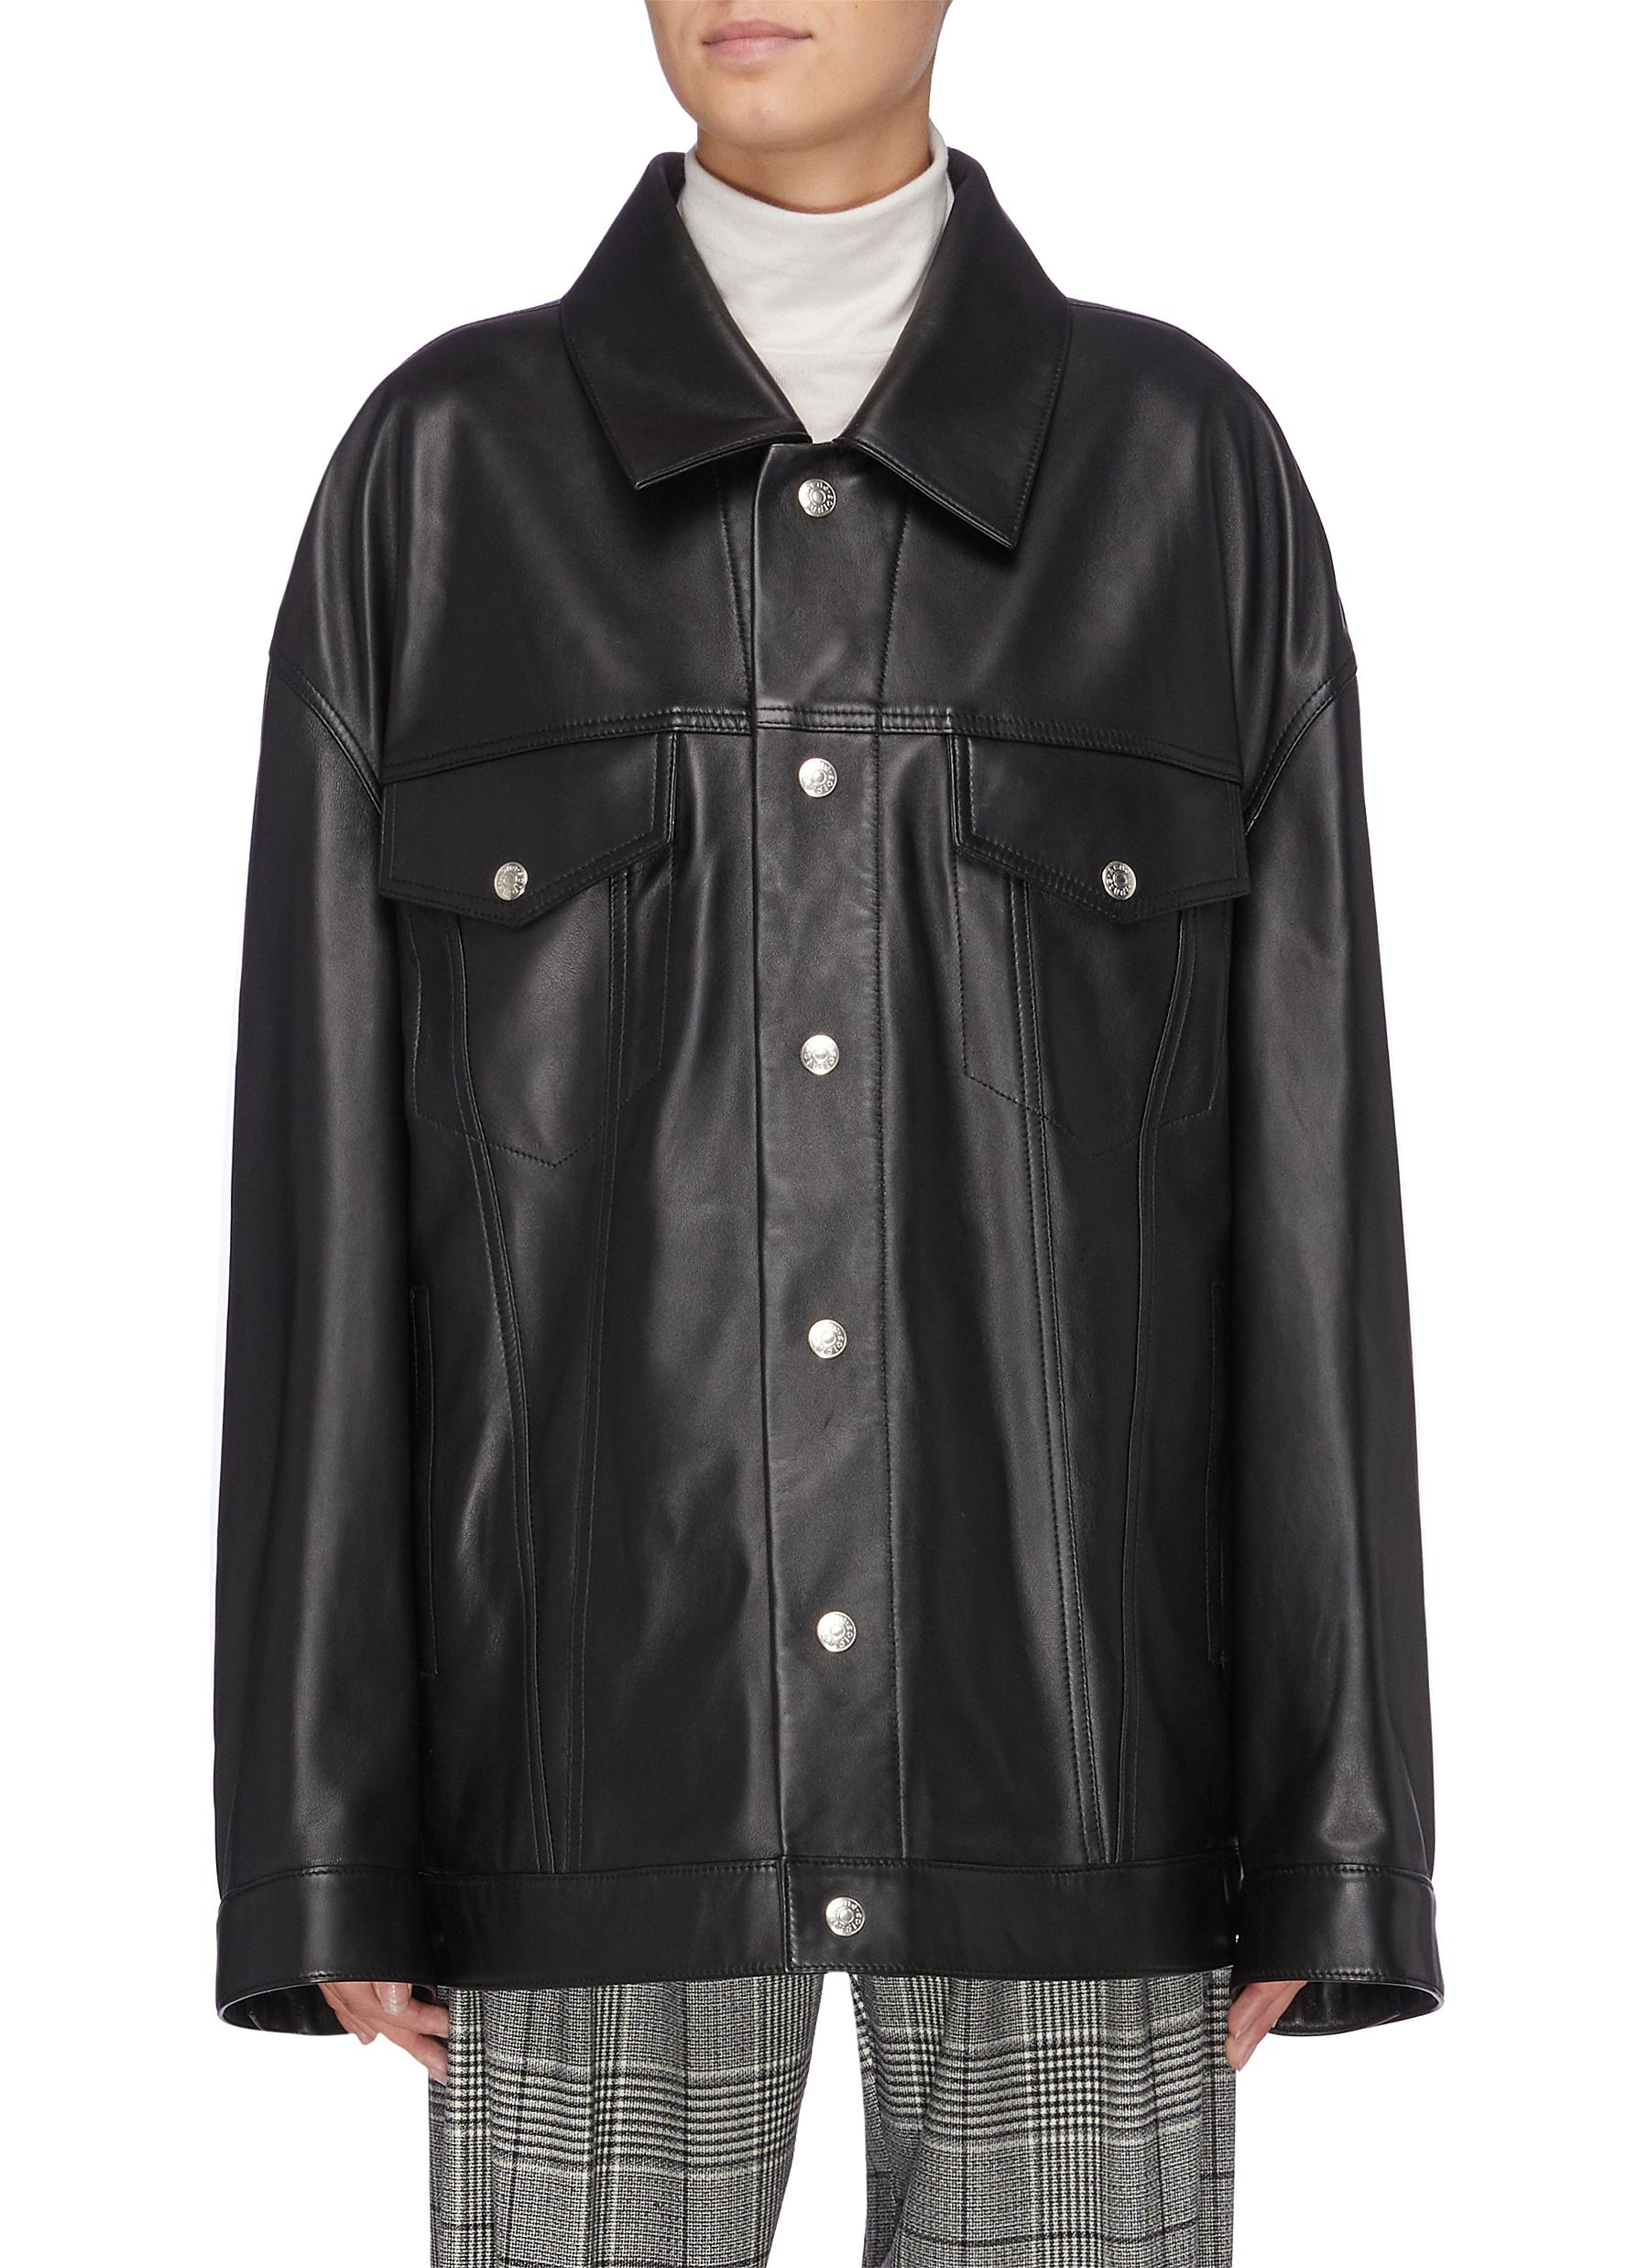 Oversized leather trucker jacket by Acne Studios